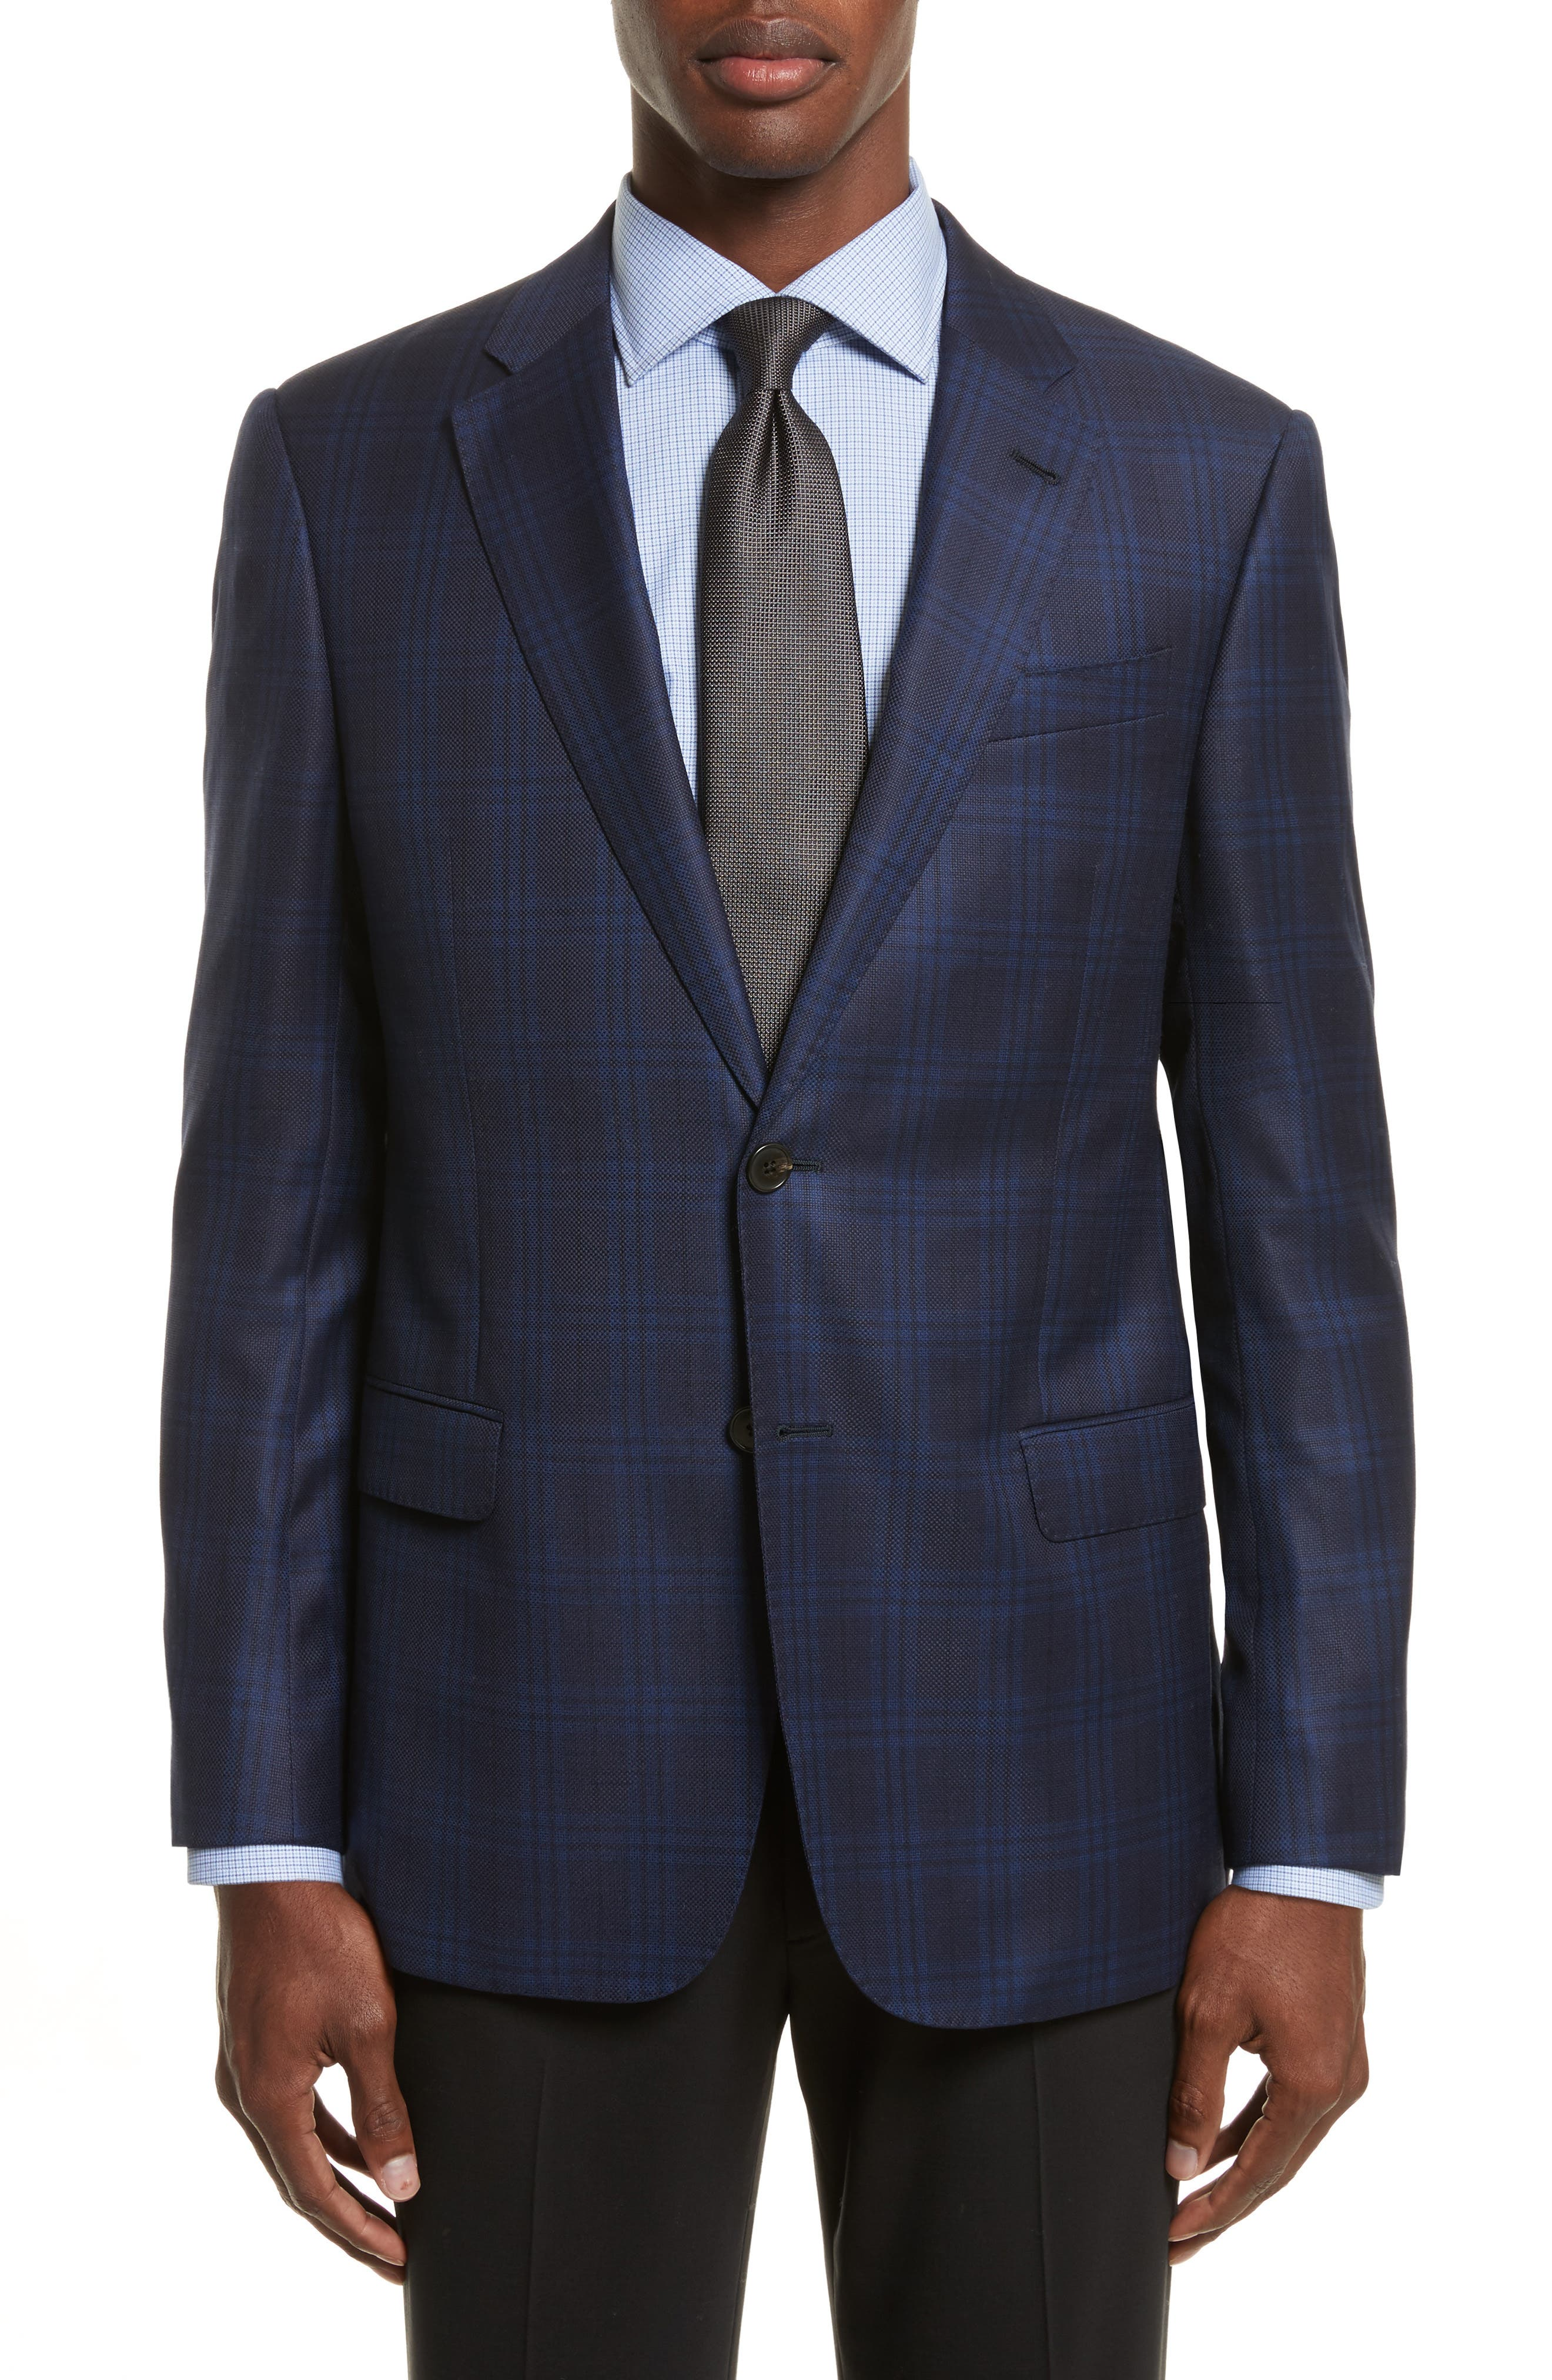 G-Line Trim Fit Houndstooth Wool Sport Coat,                             Main thumbnail 1, color,                             Navy